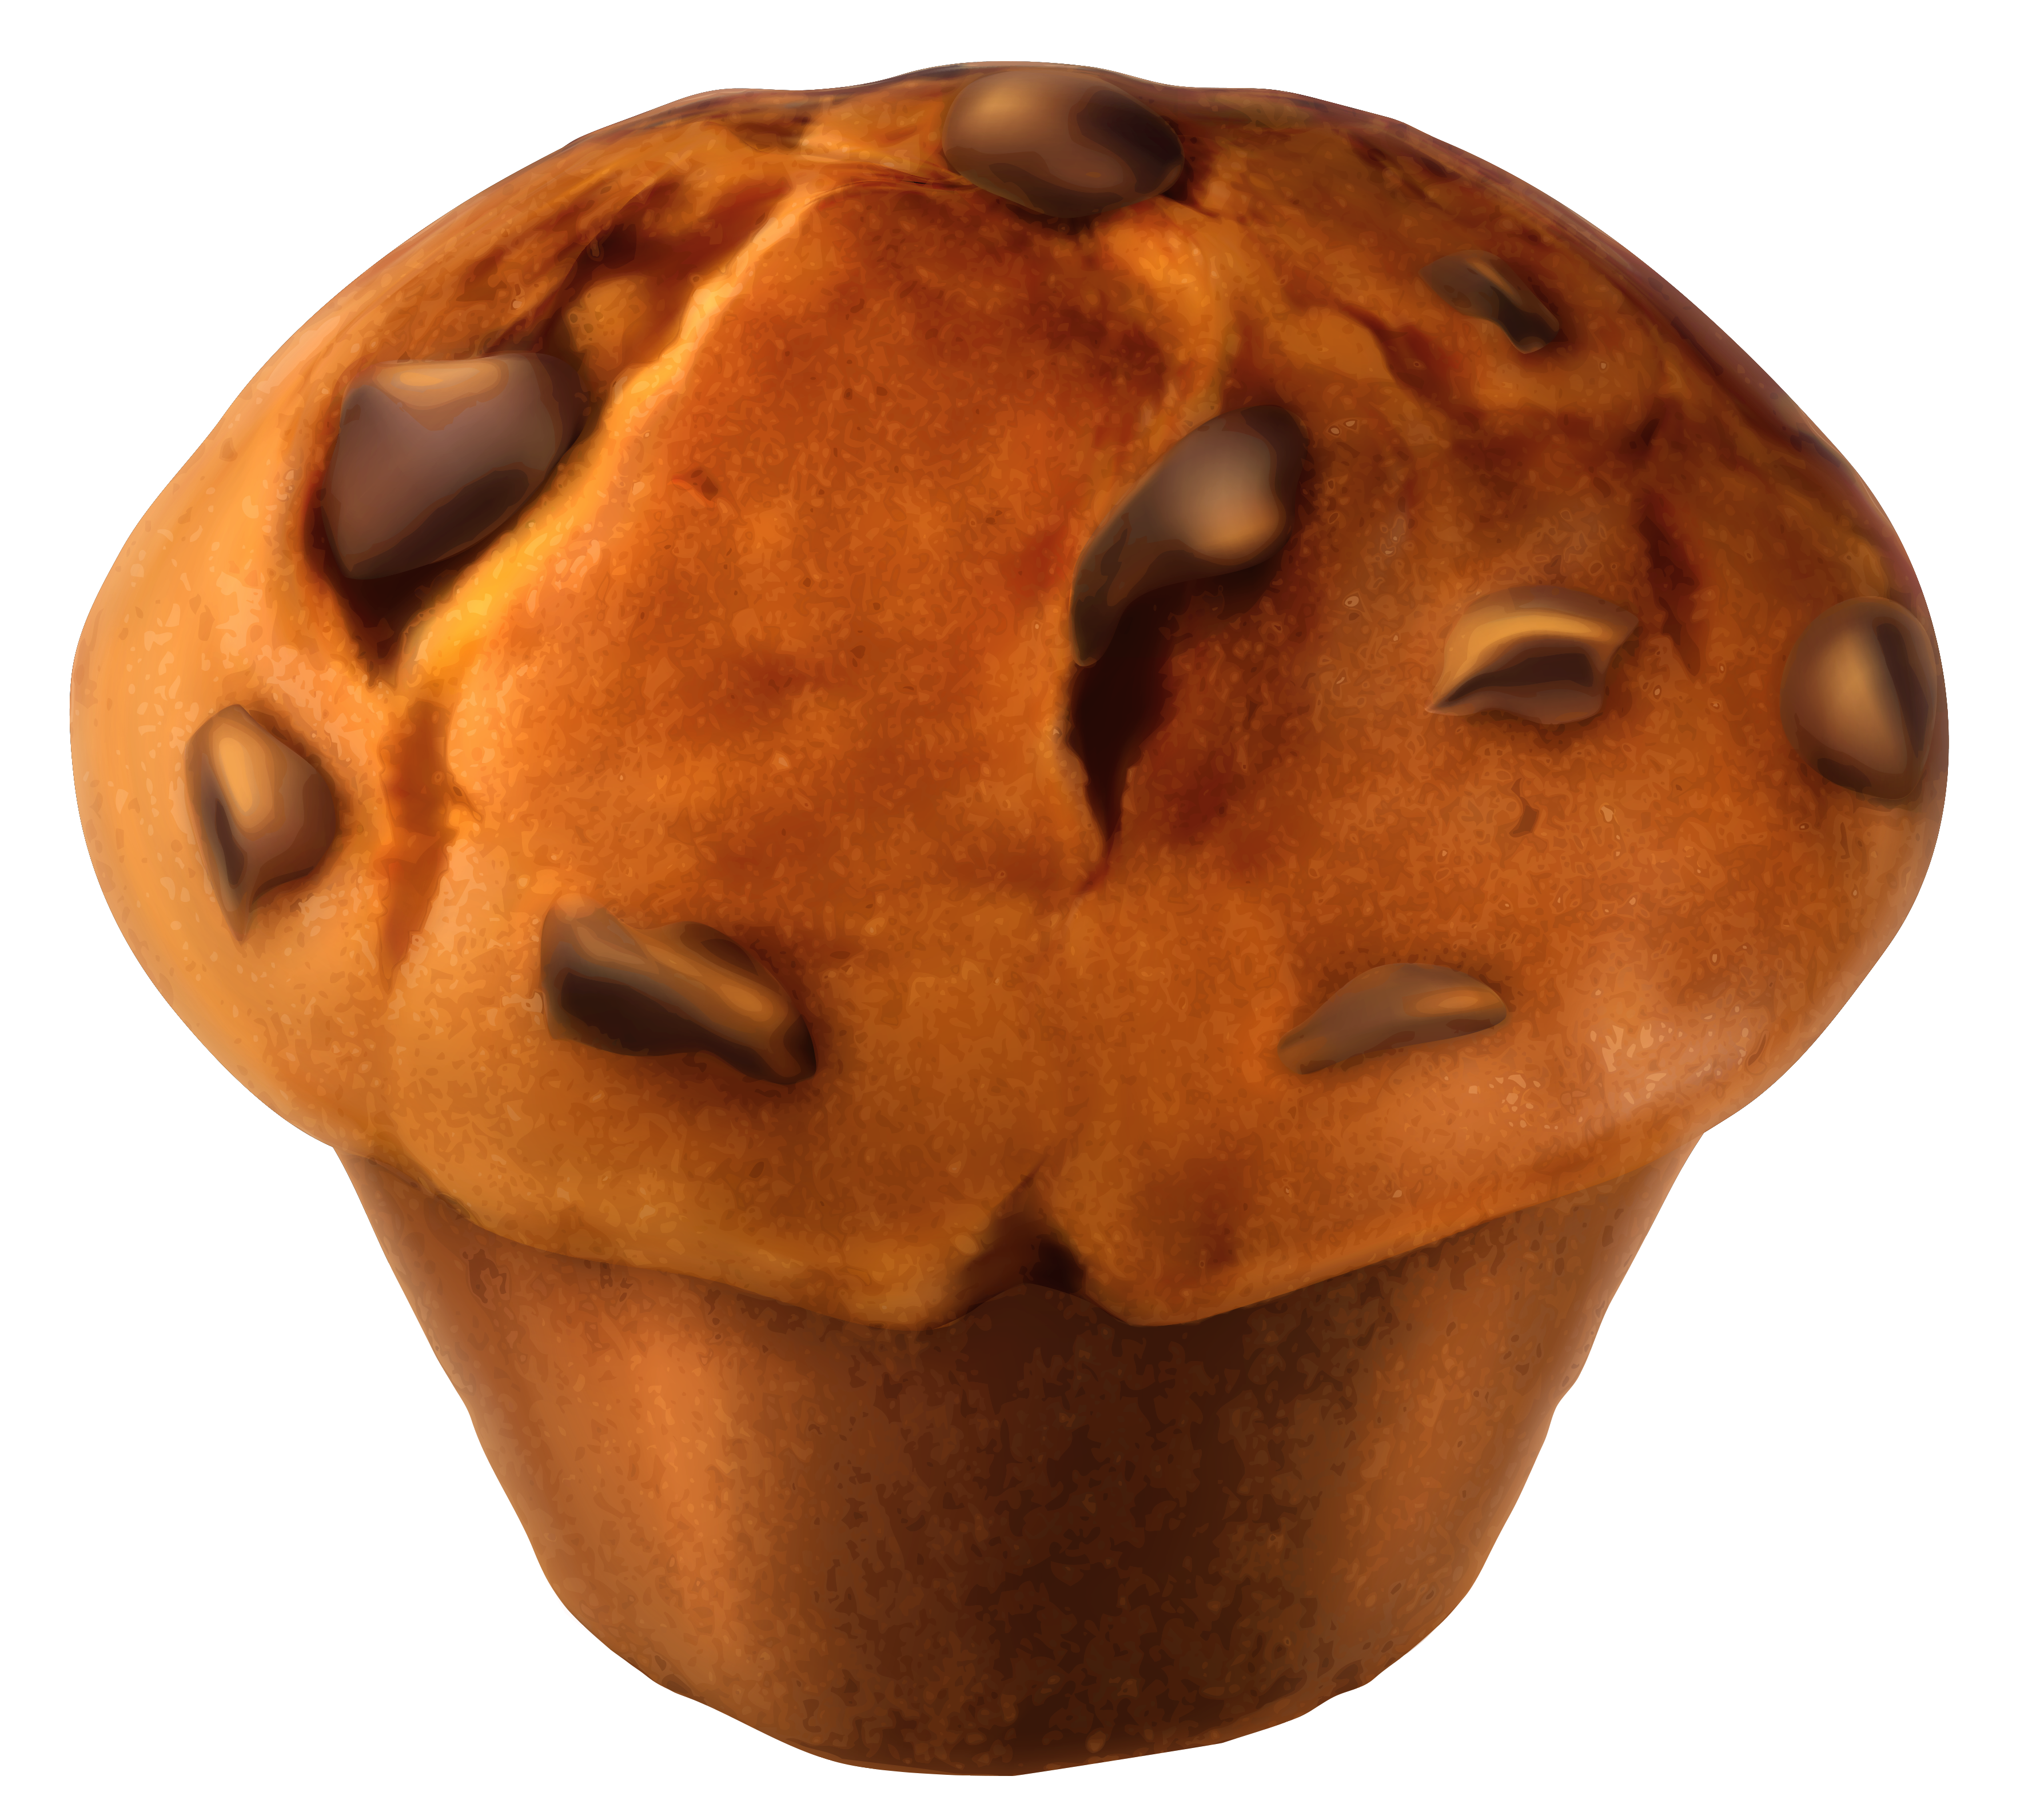 Fruit clipart muffin. Chocolate png picture gallery